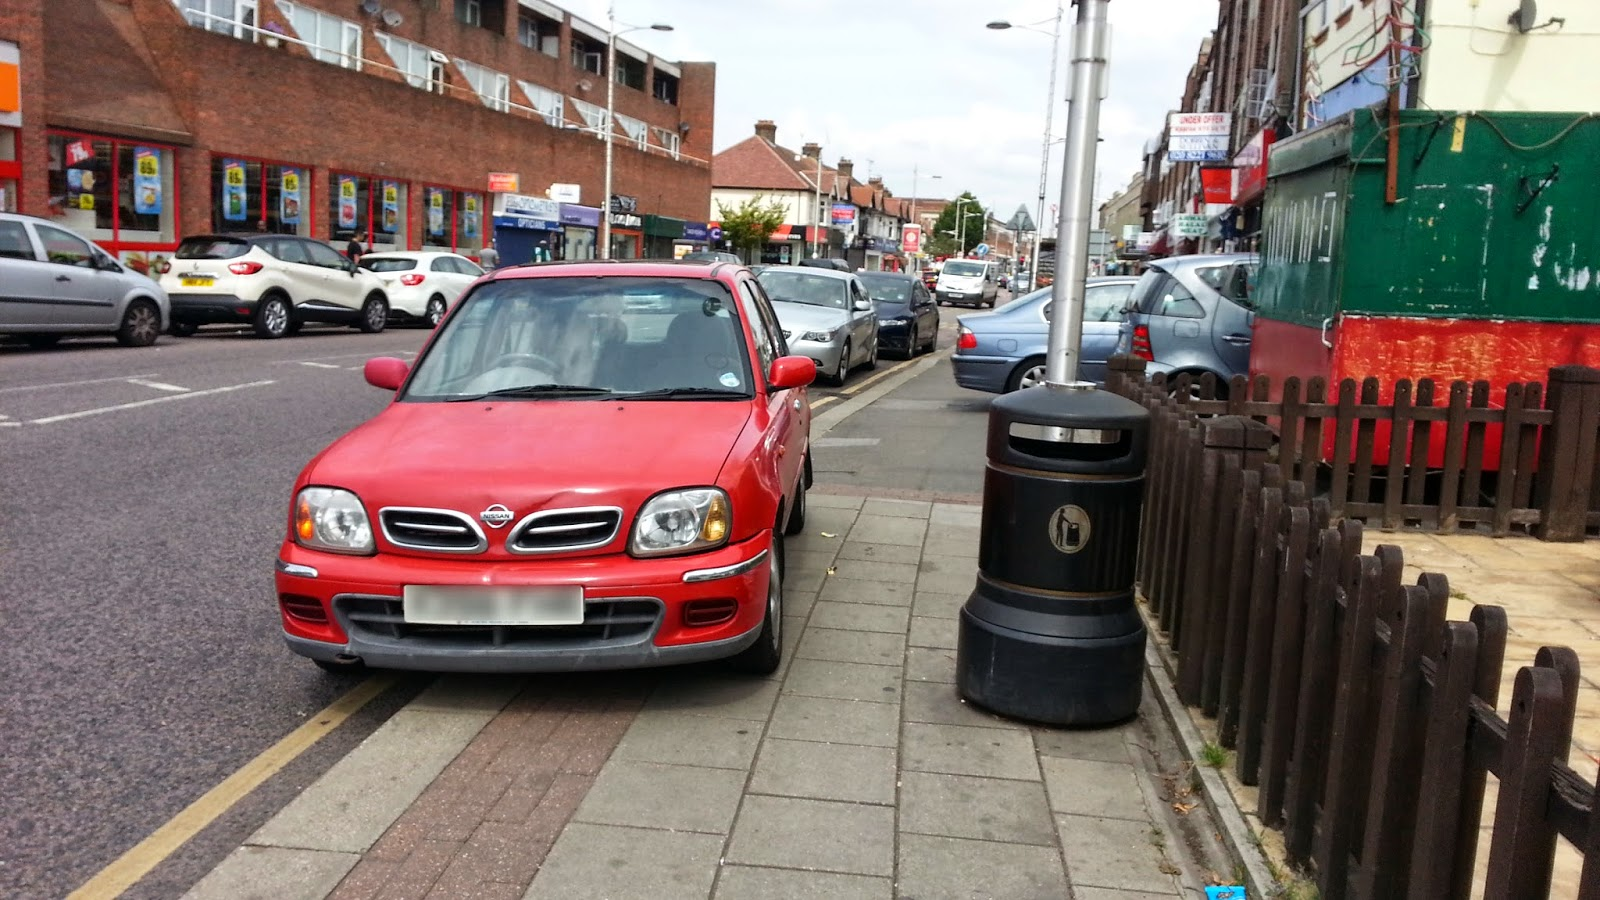 Outside The Chequers, High Street Barkingside, 20th July 2014